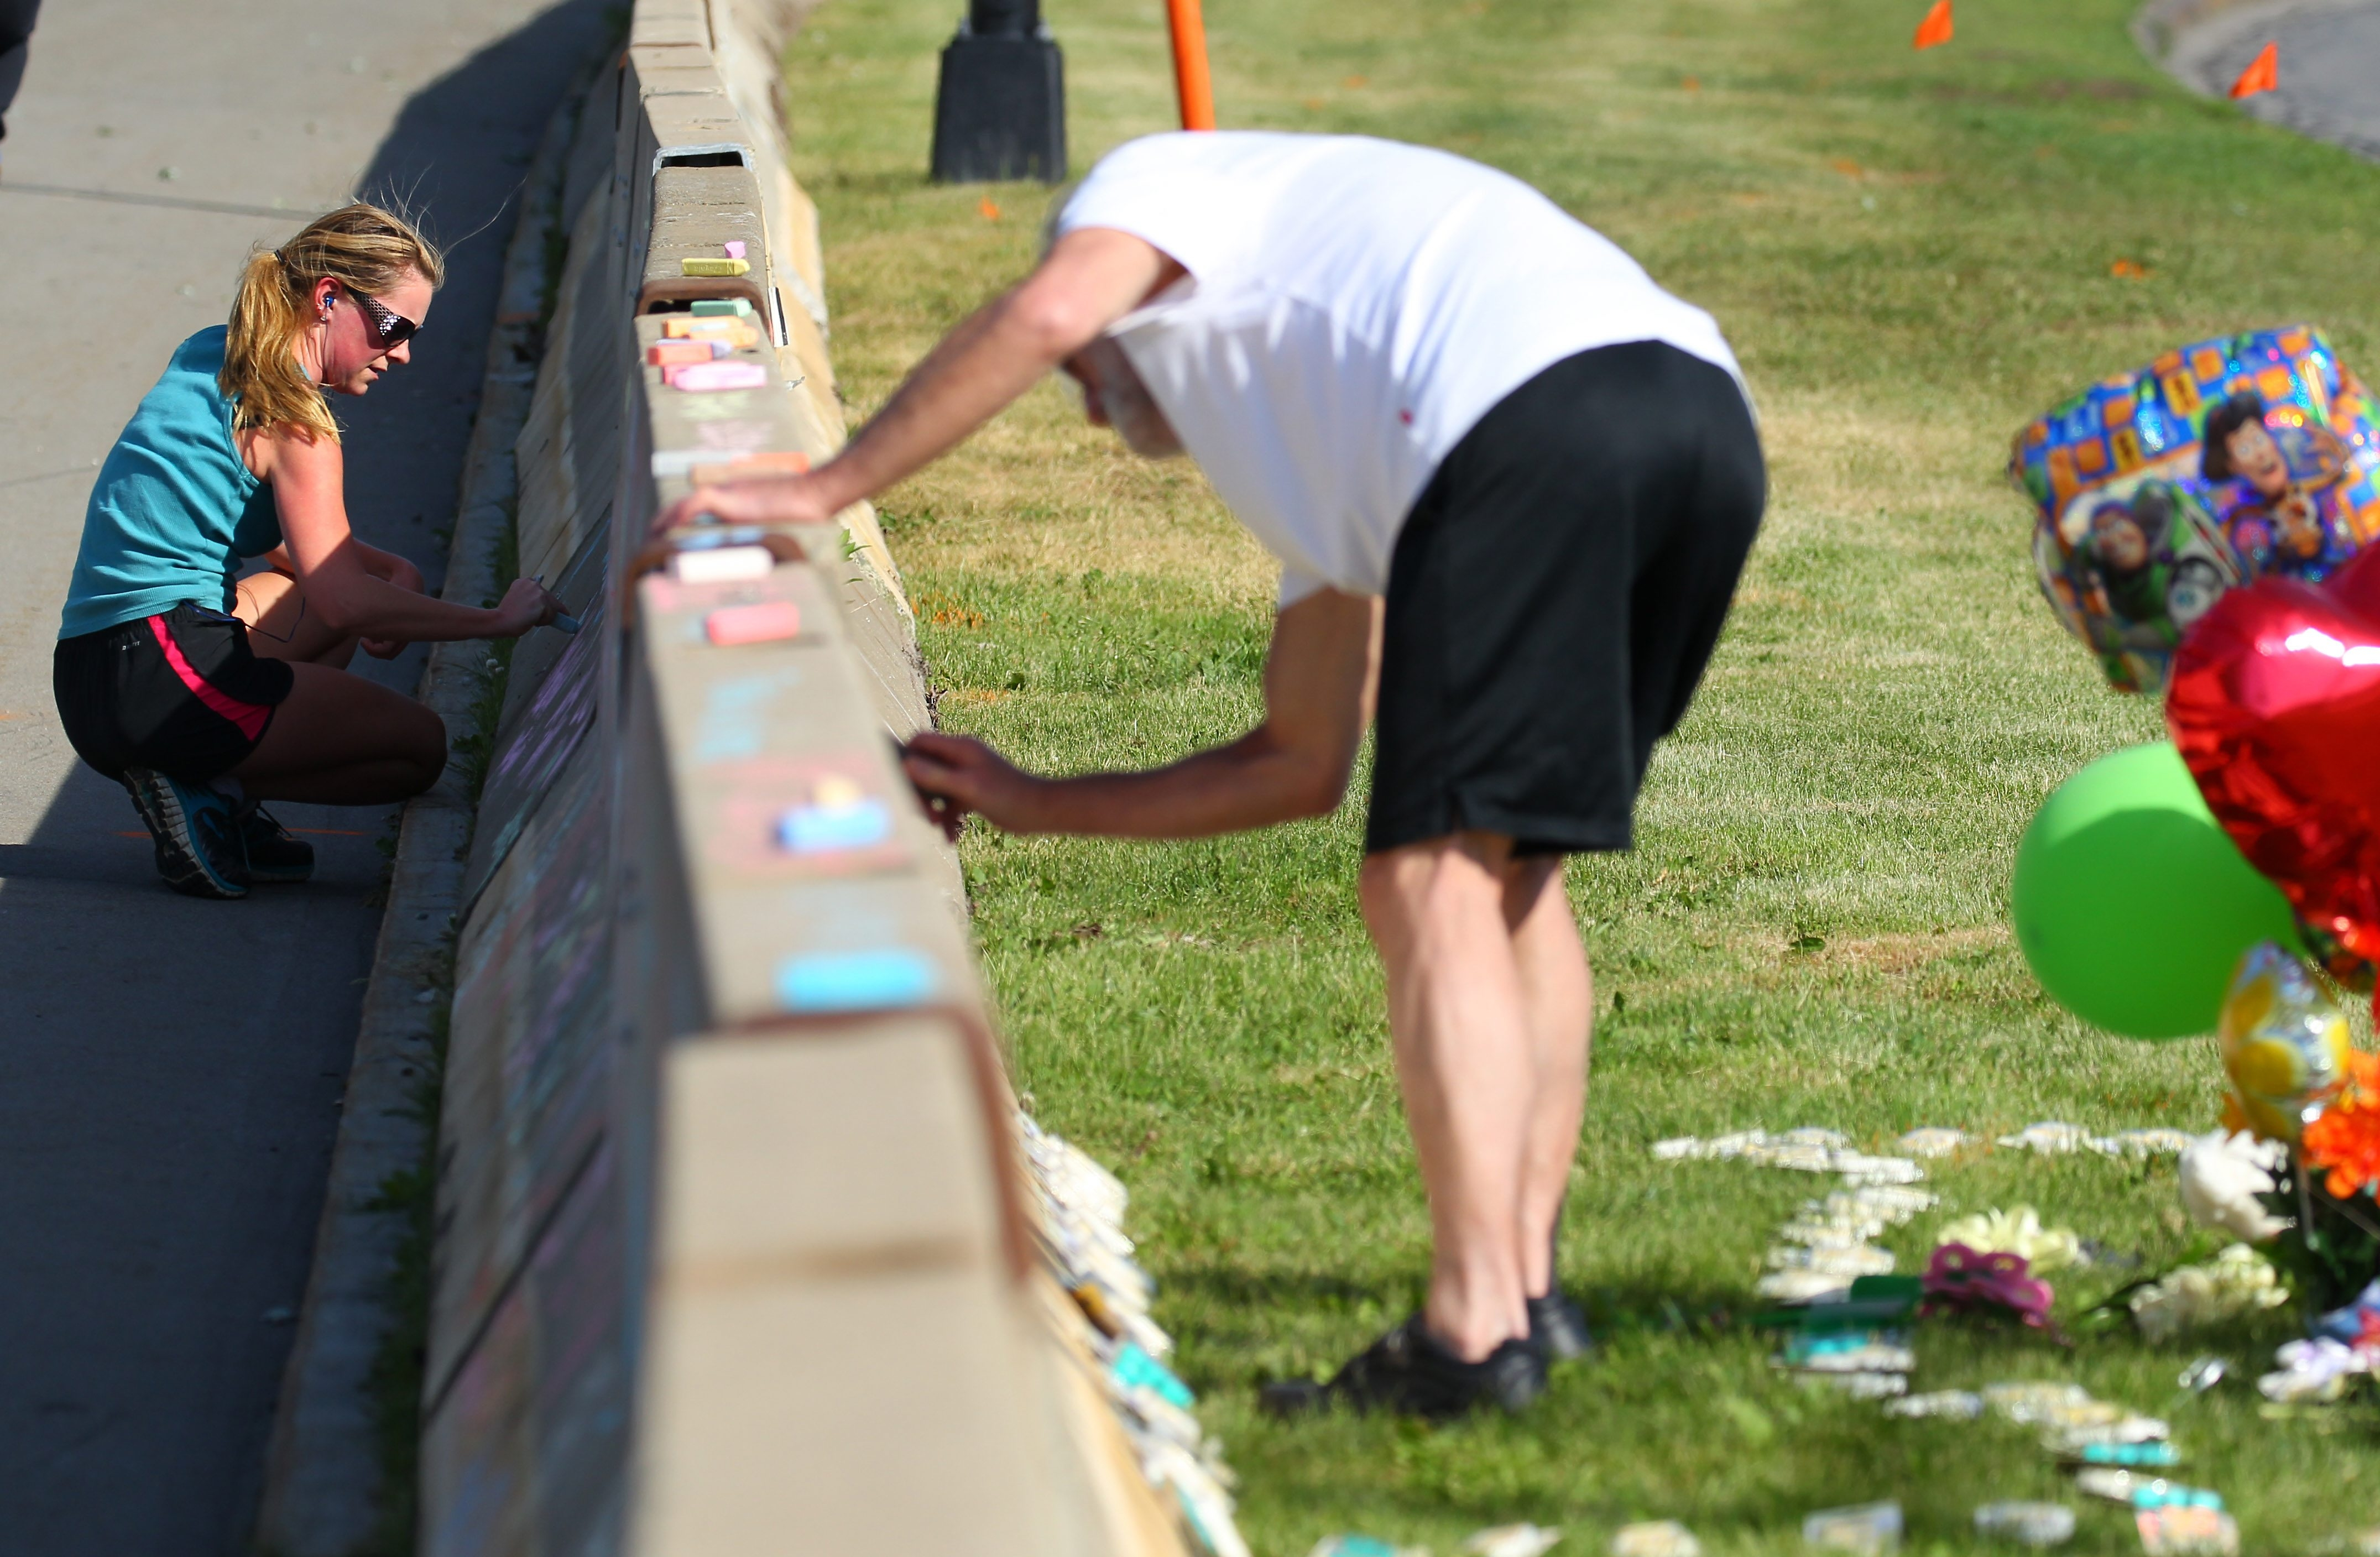 People write on the concrete barriers erected near the place where 3-year-old Maksym Sugorovskiy died in Delaware Park.